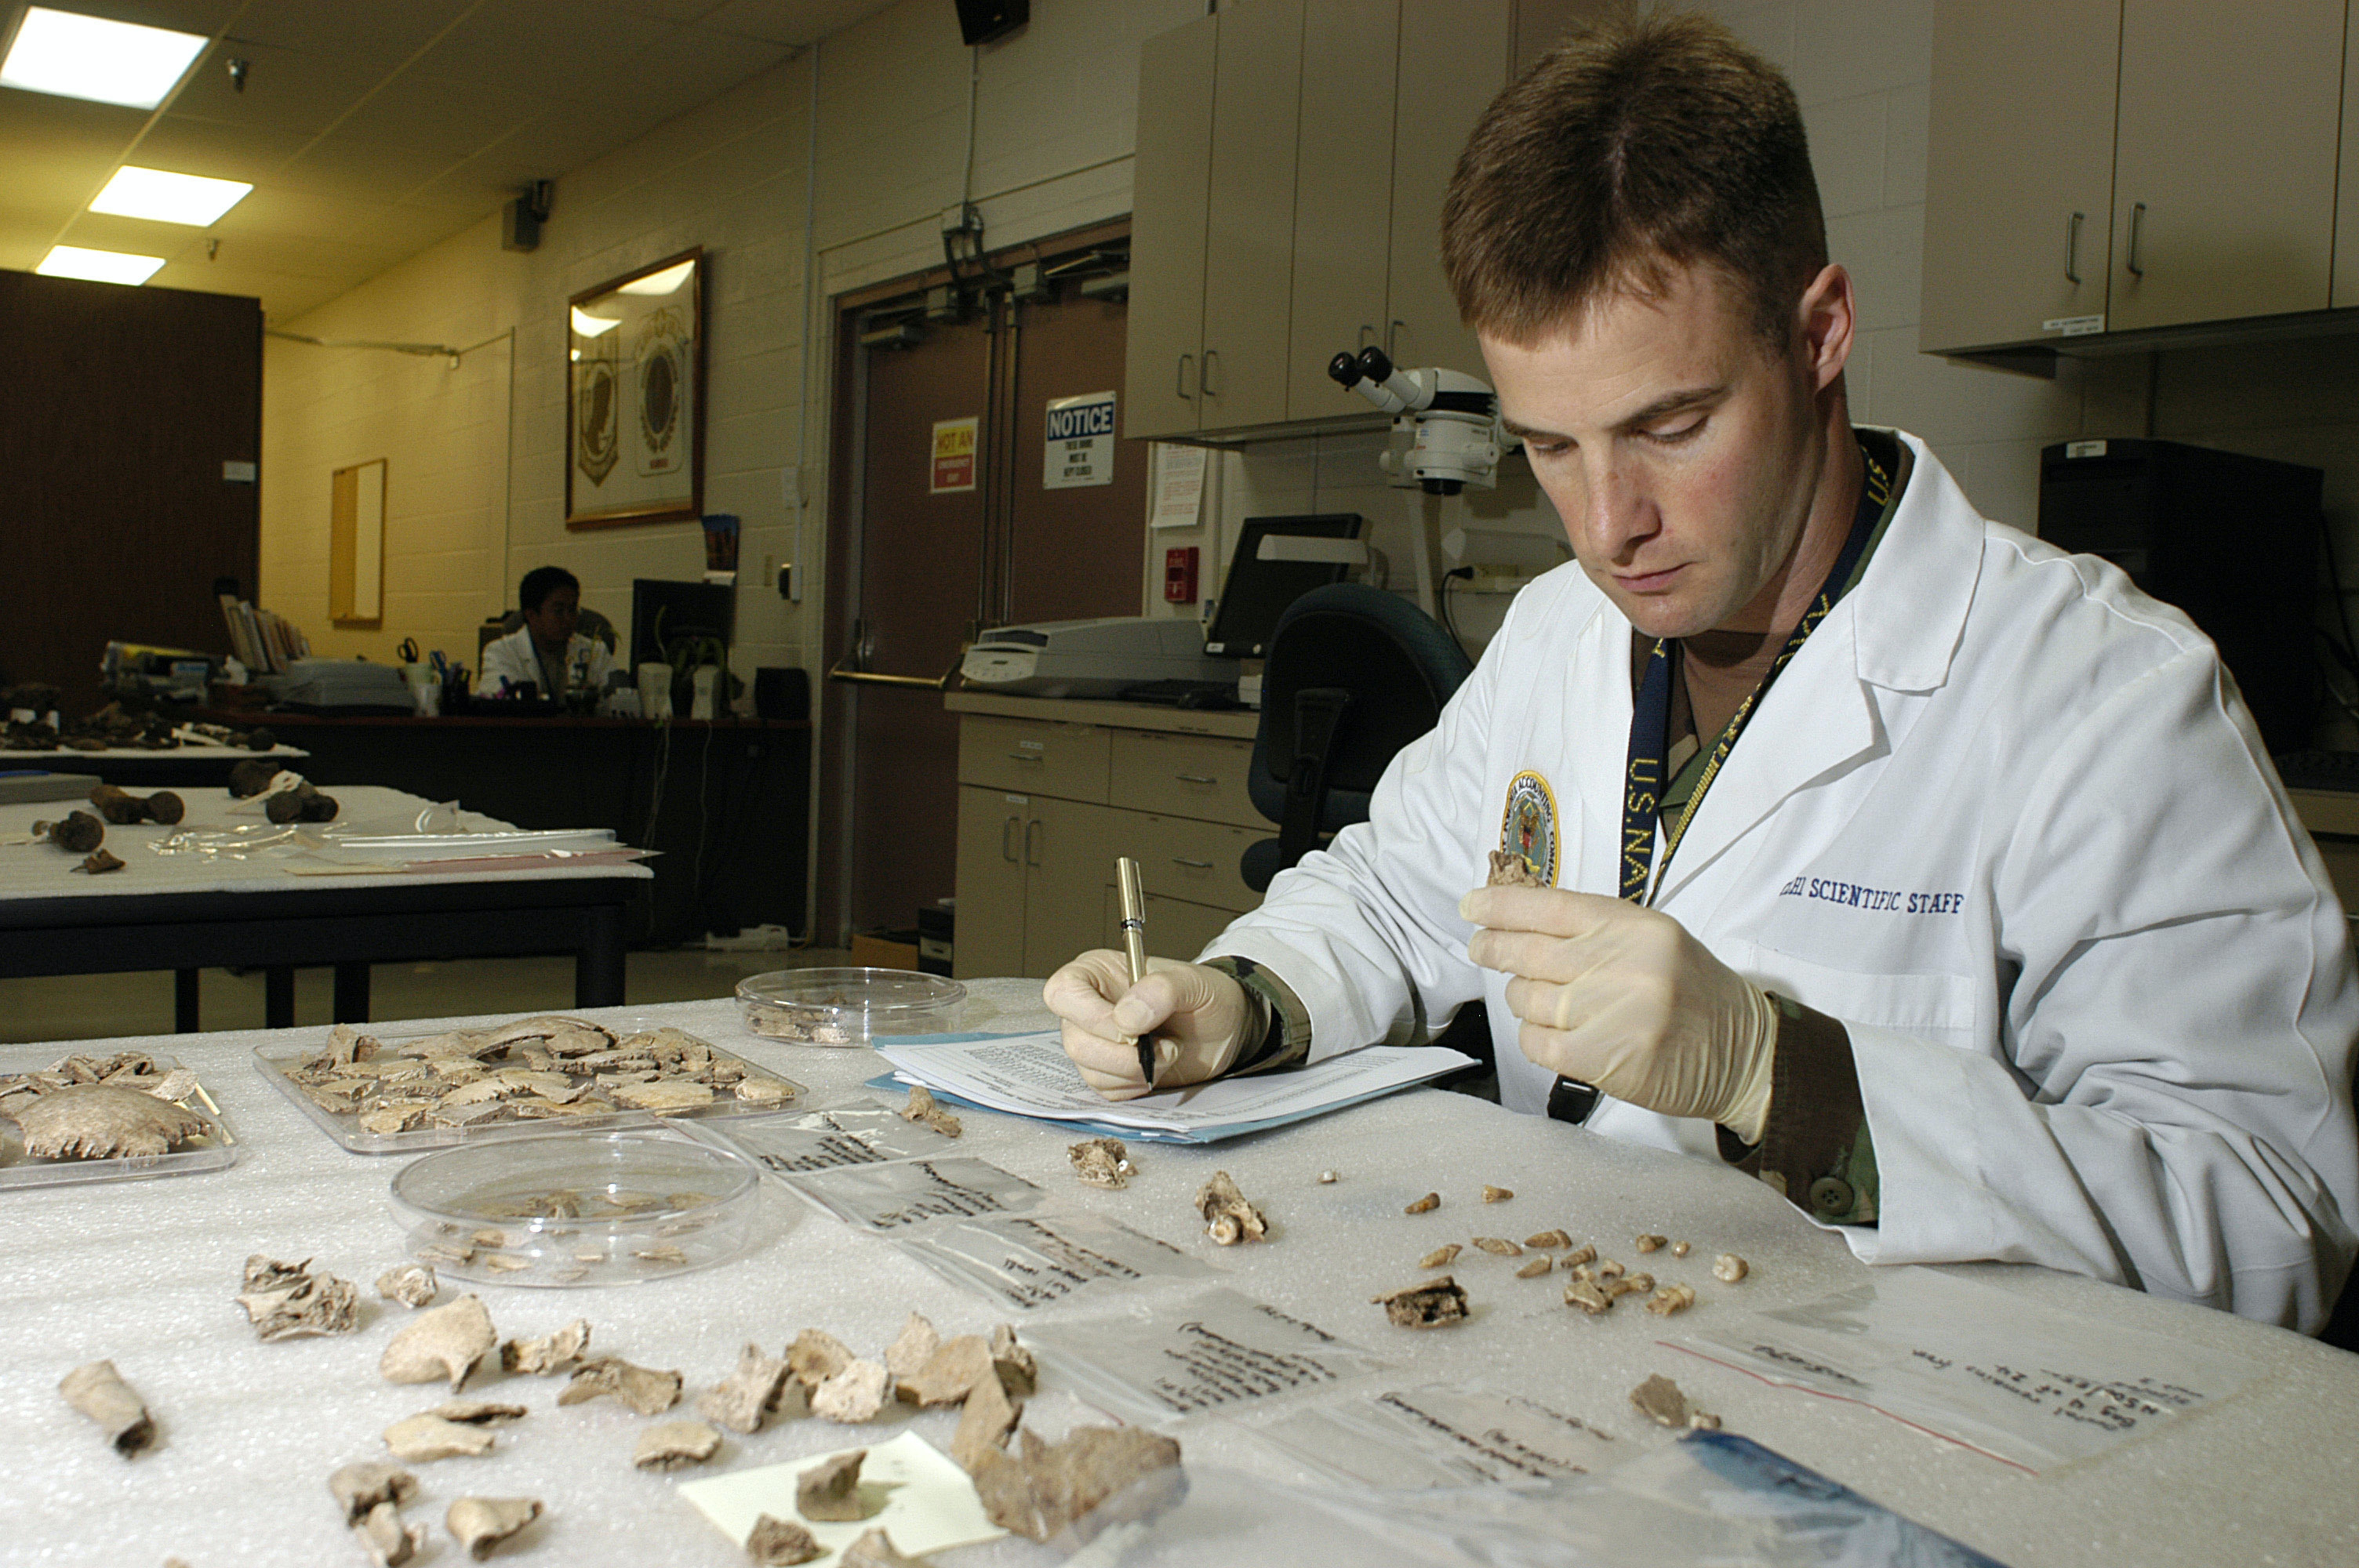 A forensic ondotologist  of the U.S. Army in 2006.